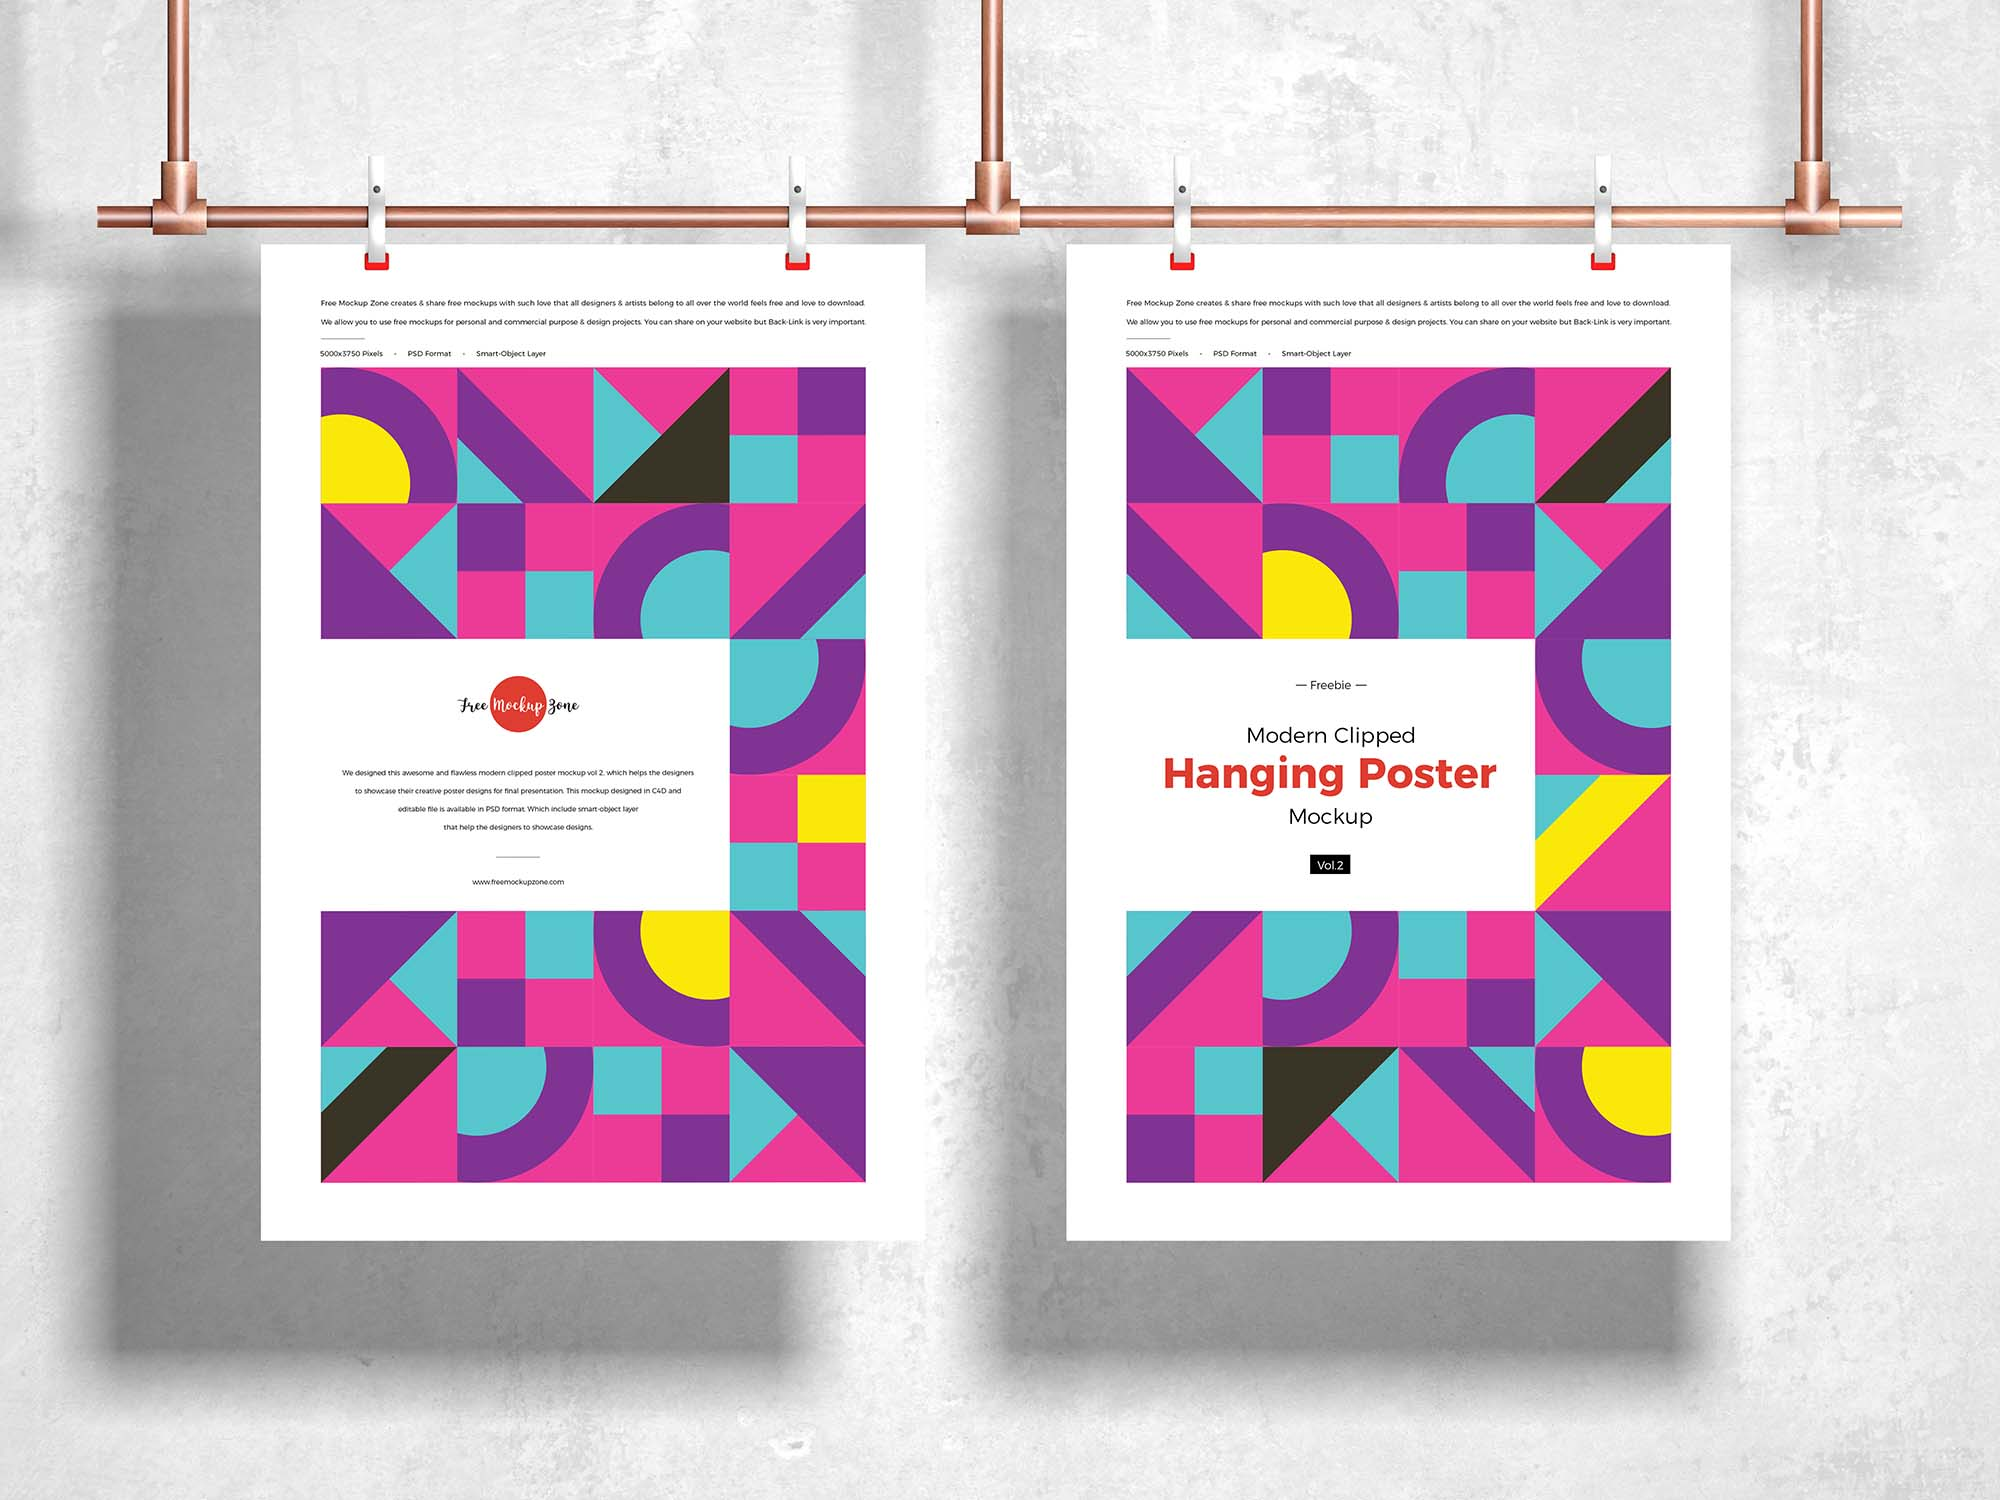 Clipped Hanging Poster Mockup